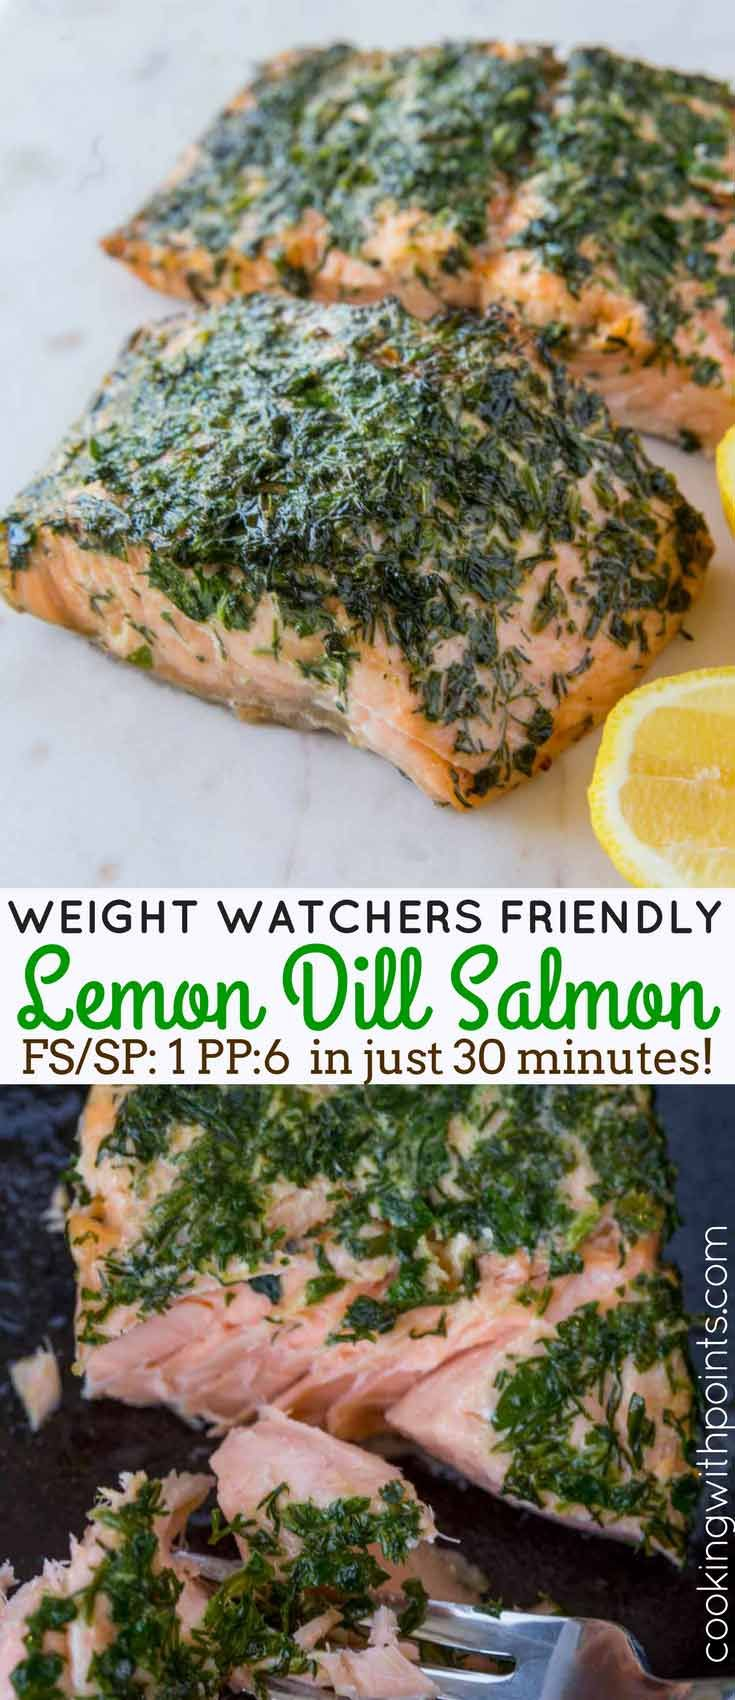 Lemon Dill Salmon with just five ingredients is a bright, fresh, delicious salmon option you can enjoy warm or cold. The perfect main course or topping on a spring salad that is just 1 Weight Watchers smart point per serving.